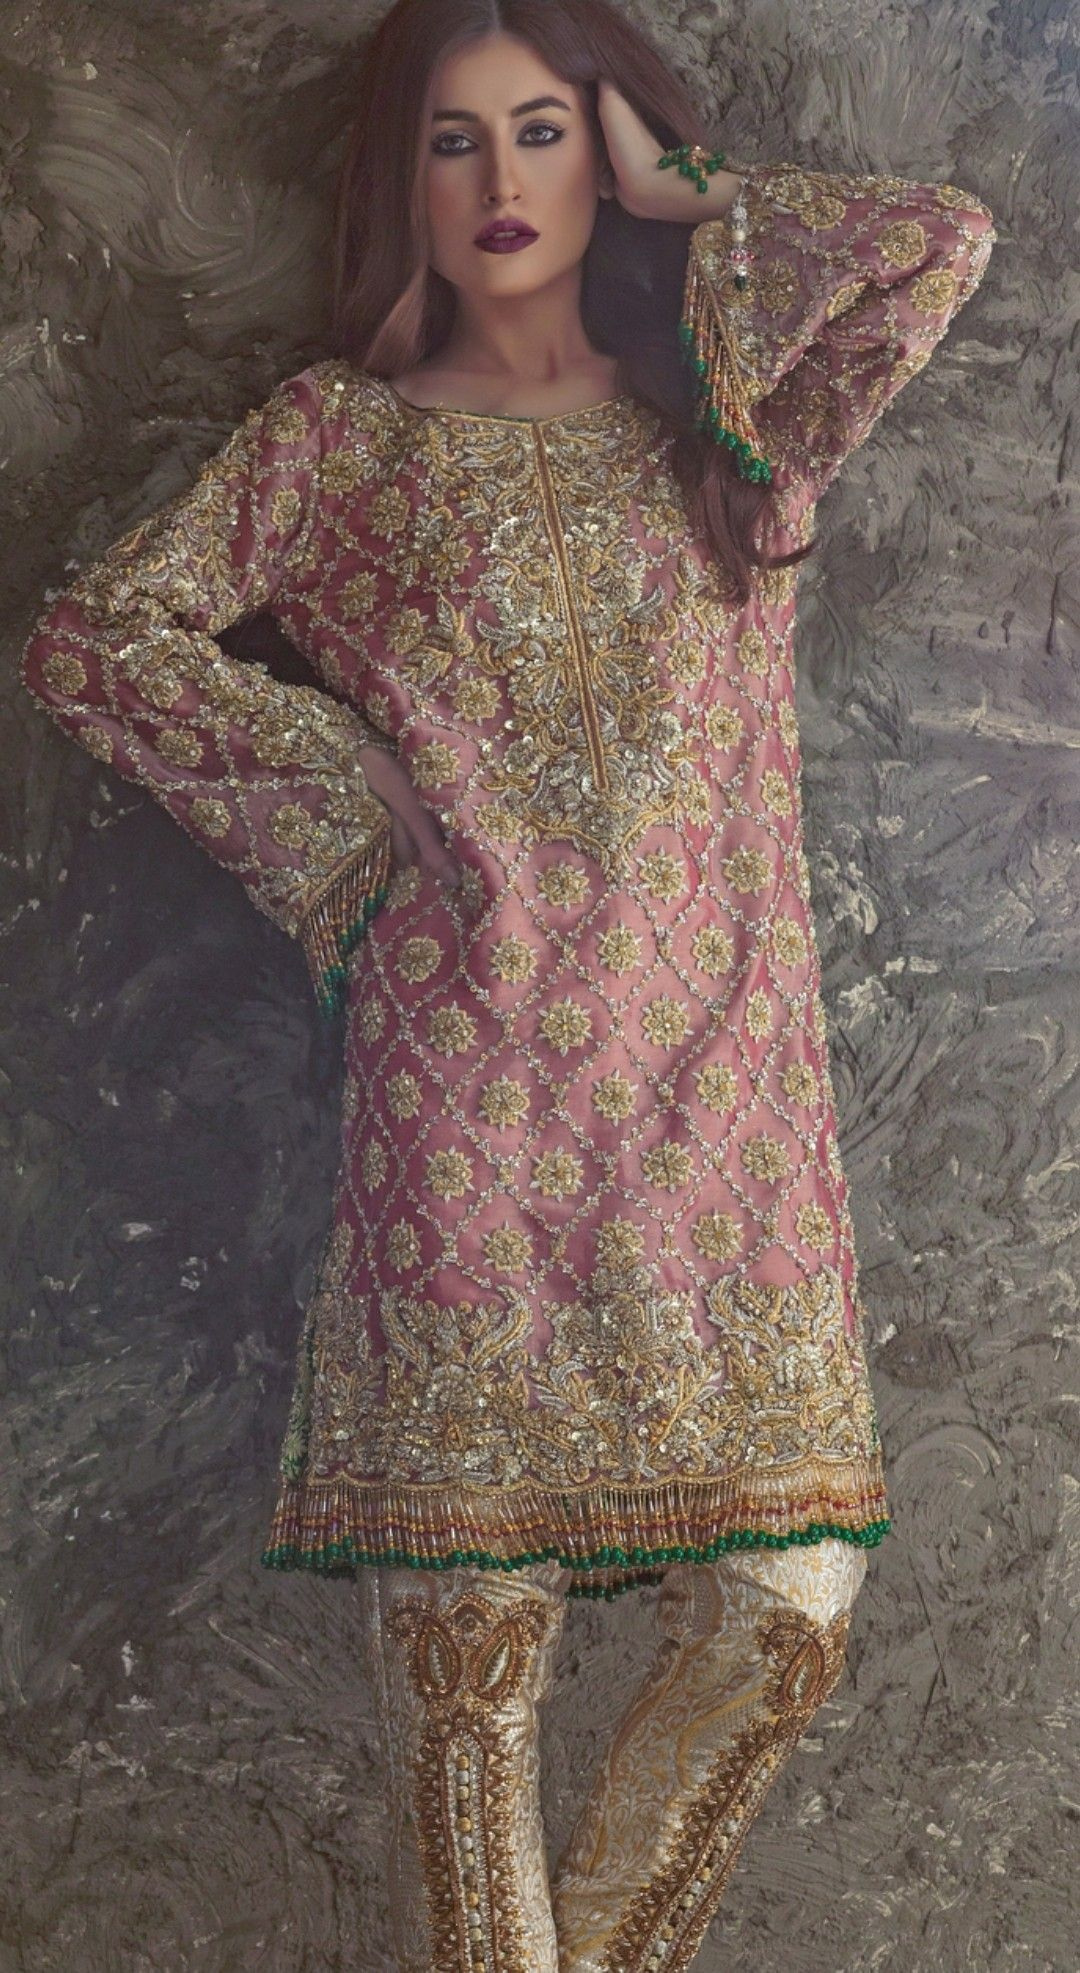 Pin by zakira fatima on pakistani couture pinterest dresses